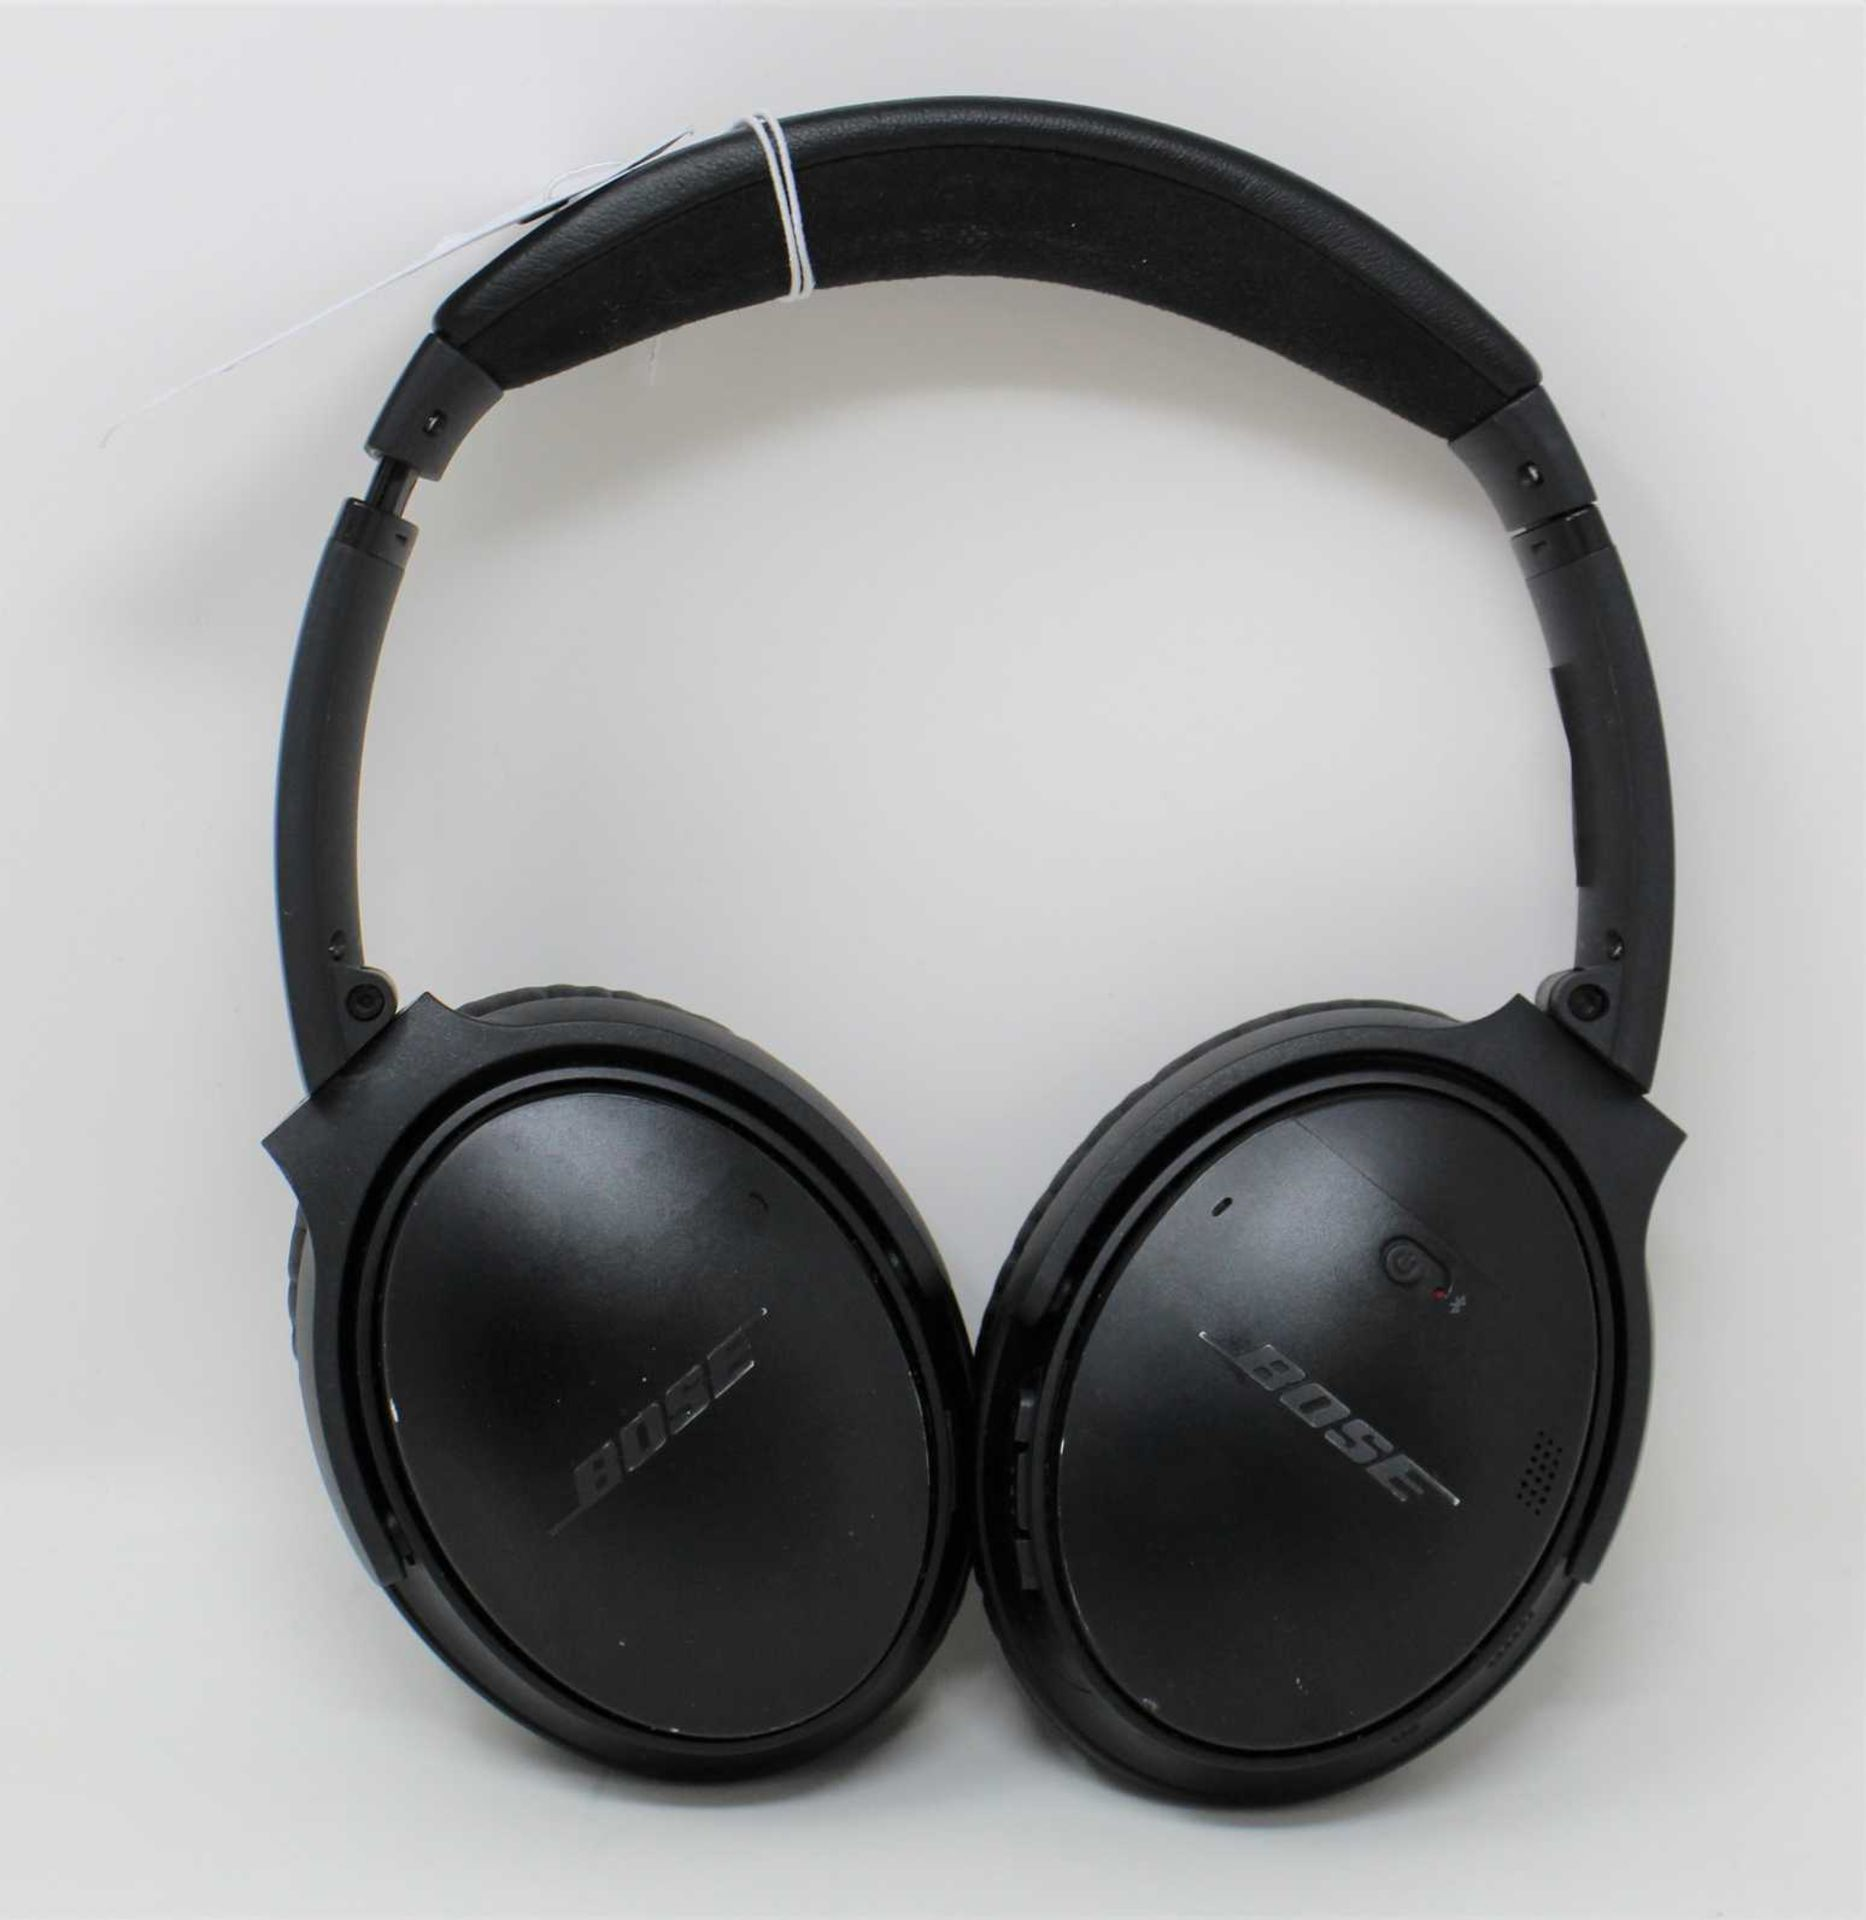 A pre-owned pair of Bose QuietComfort 35 II Wireless Headphones in Black (Some cosmetic marks to